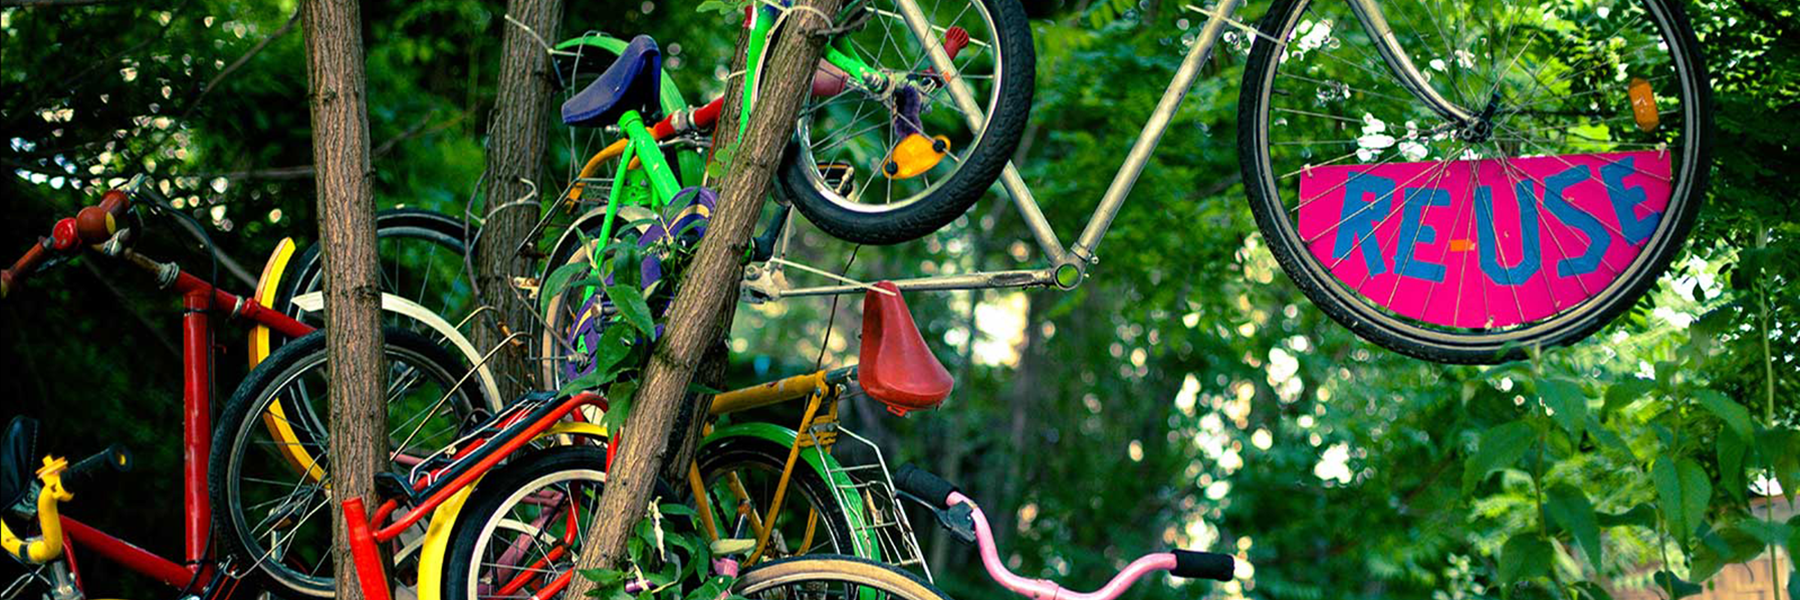 bicycles hanging on side